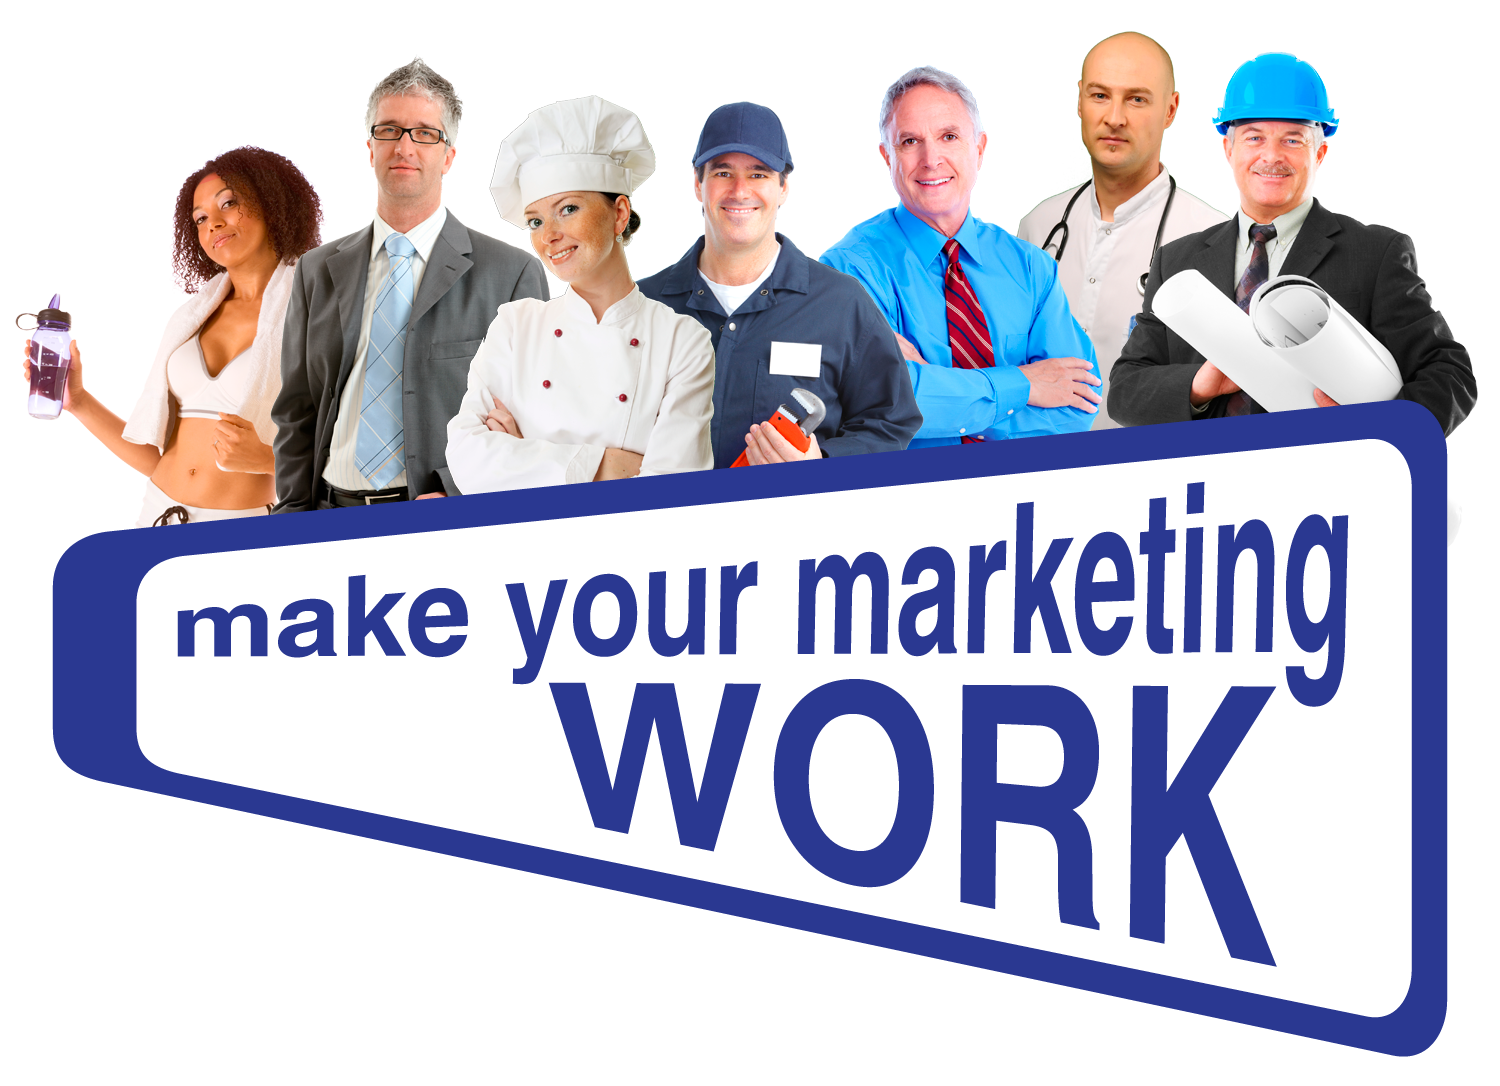 makeyourmarketingwork